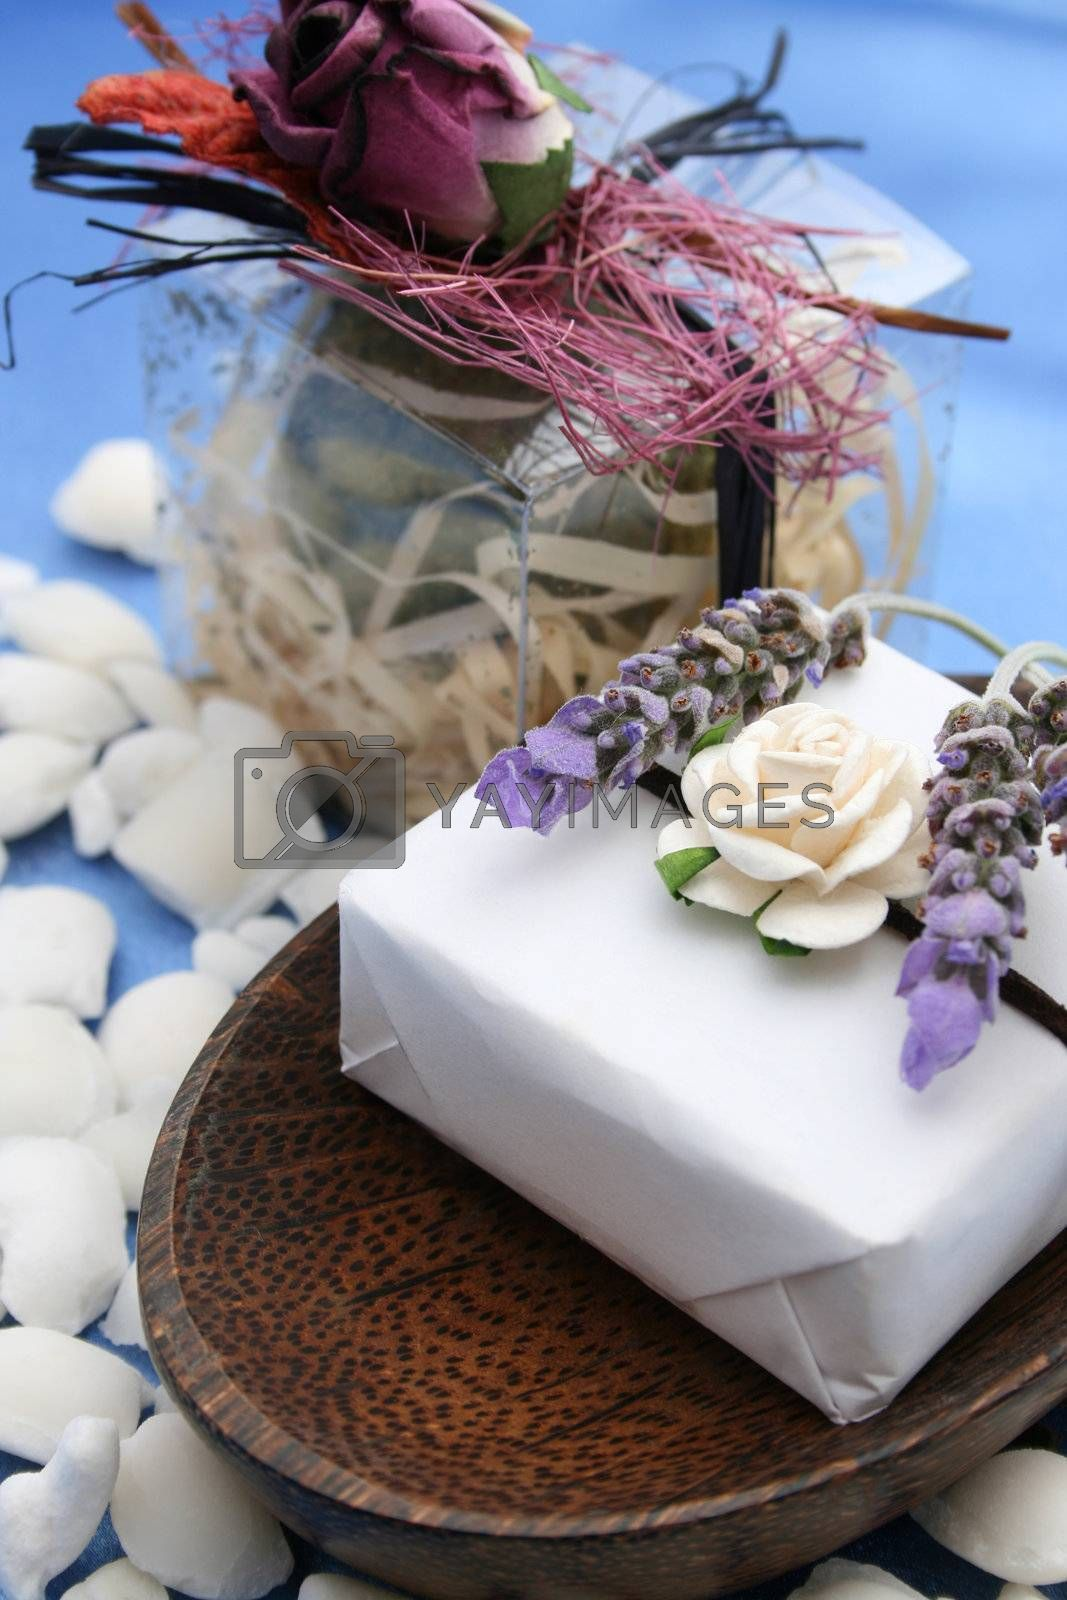 Wooden Soap Dish and Fizz Ball in PVC box decorated with flowers